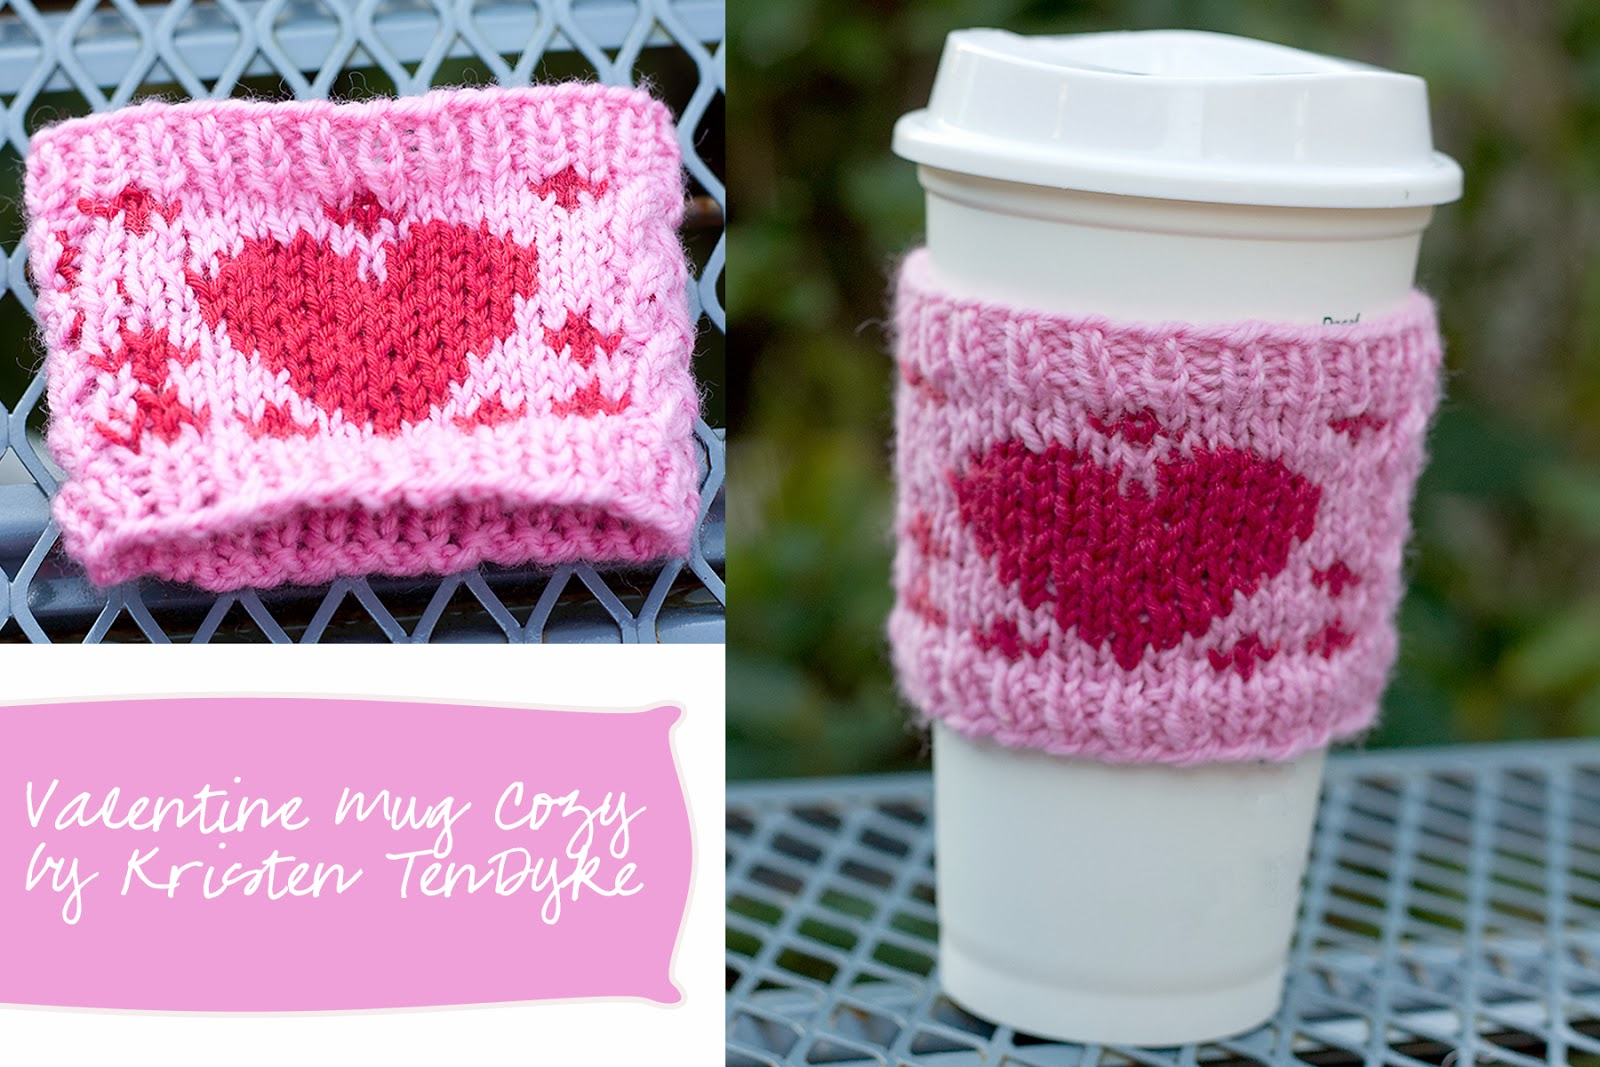 Click to see this project on Ravelry!